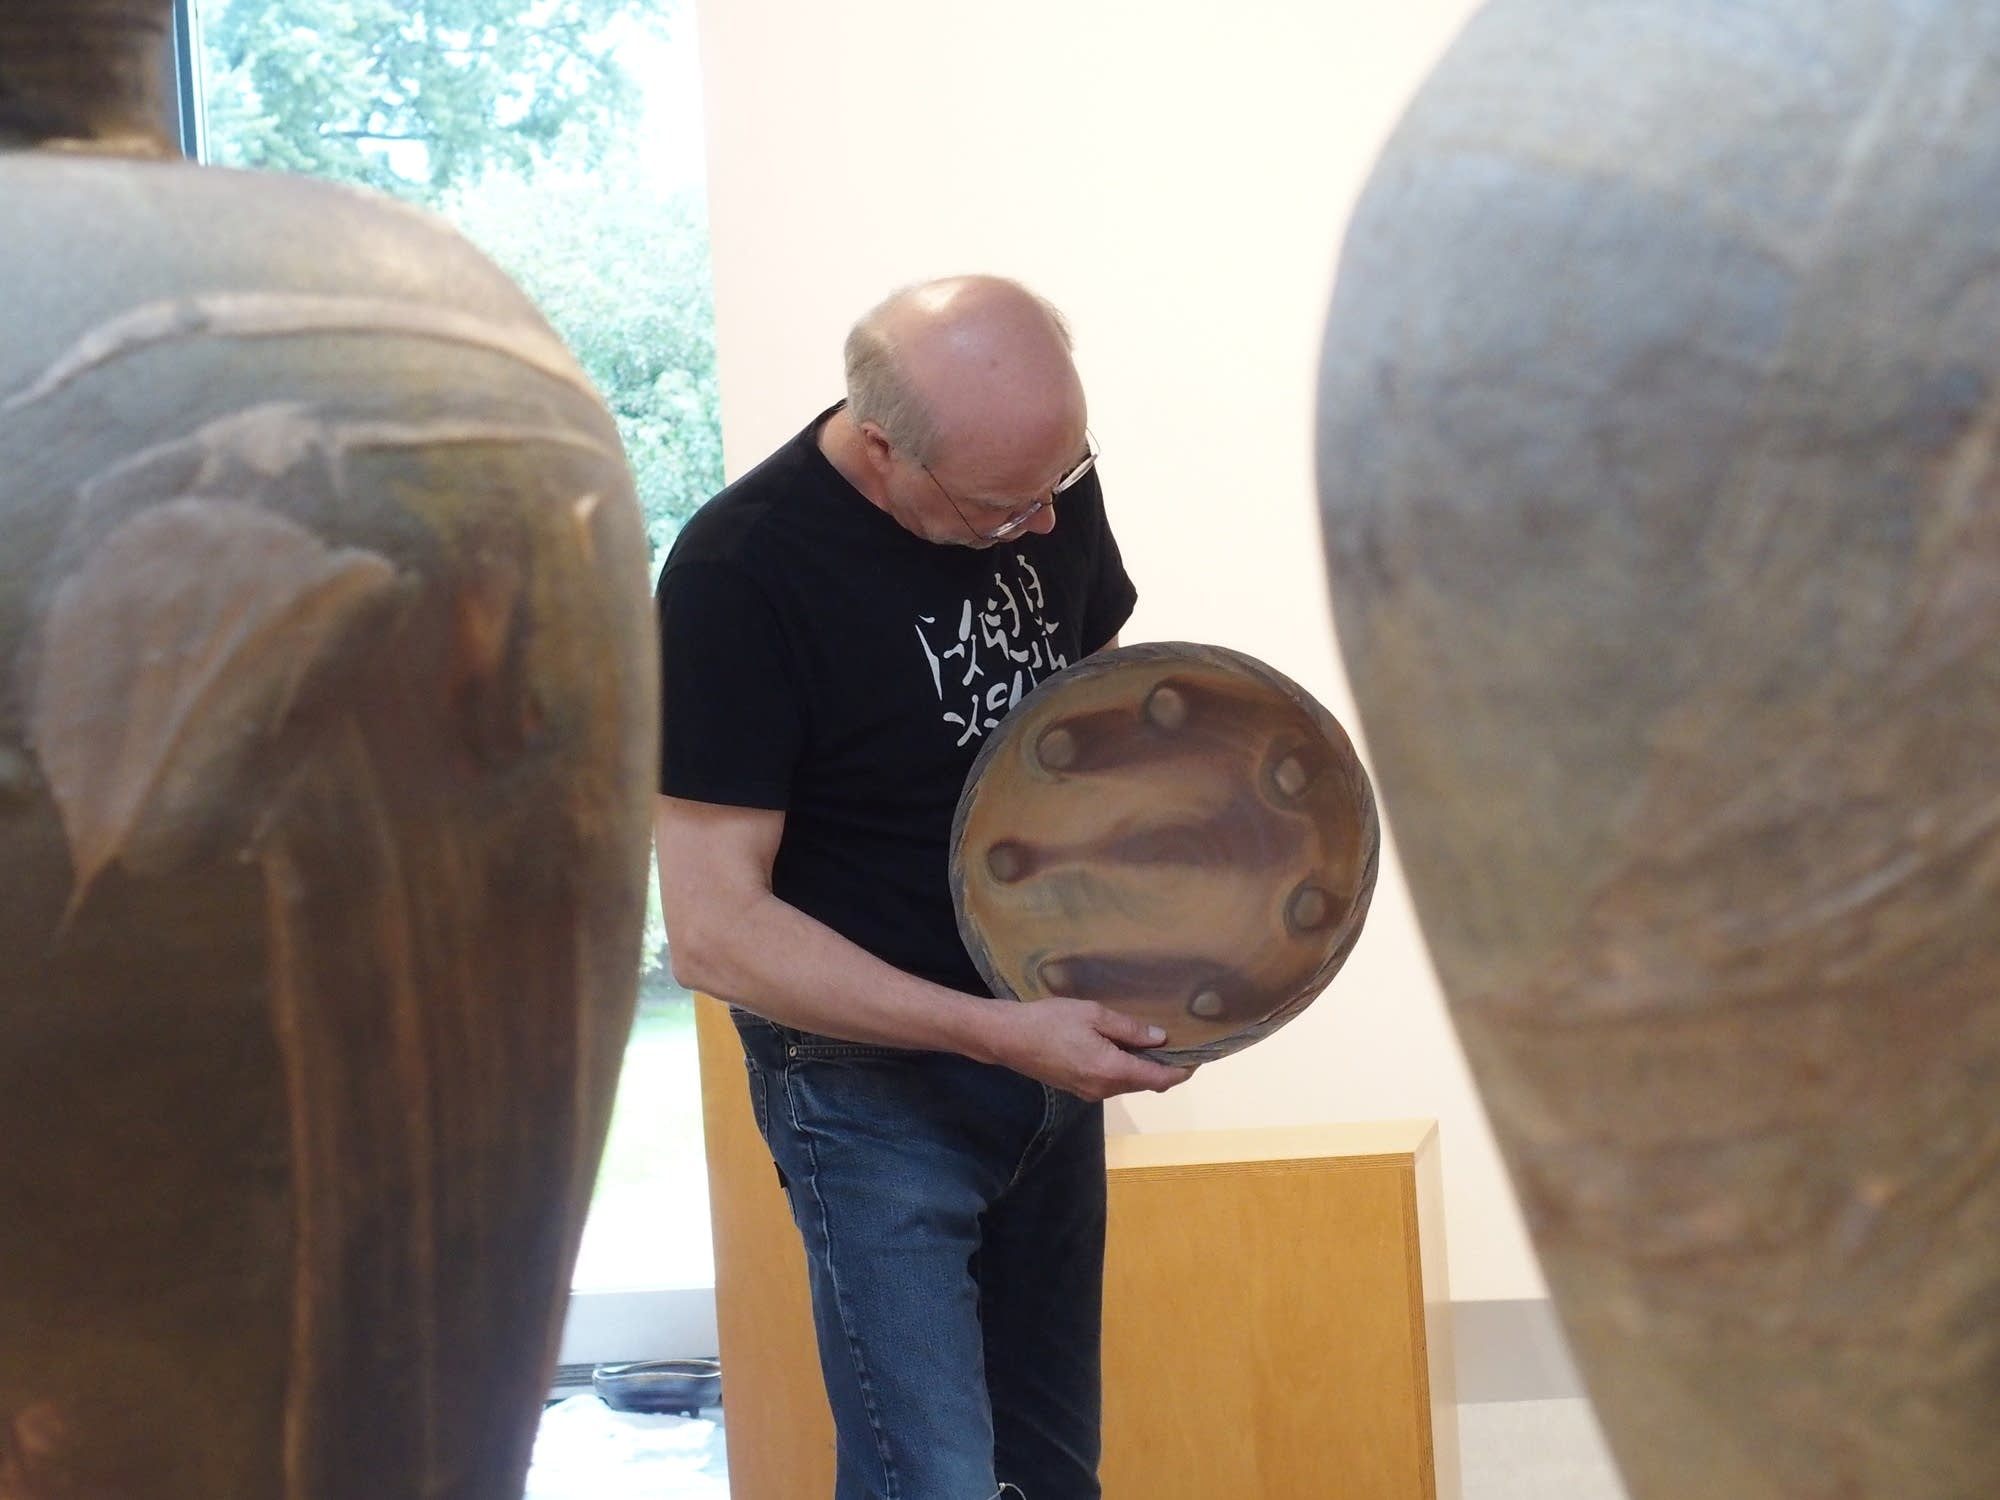 Richard Bresnahan examines the pattern on a bowl